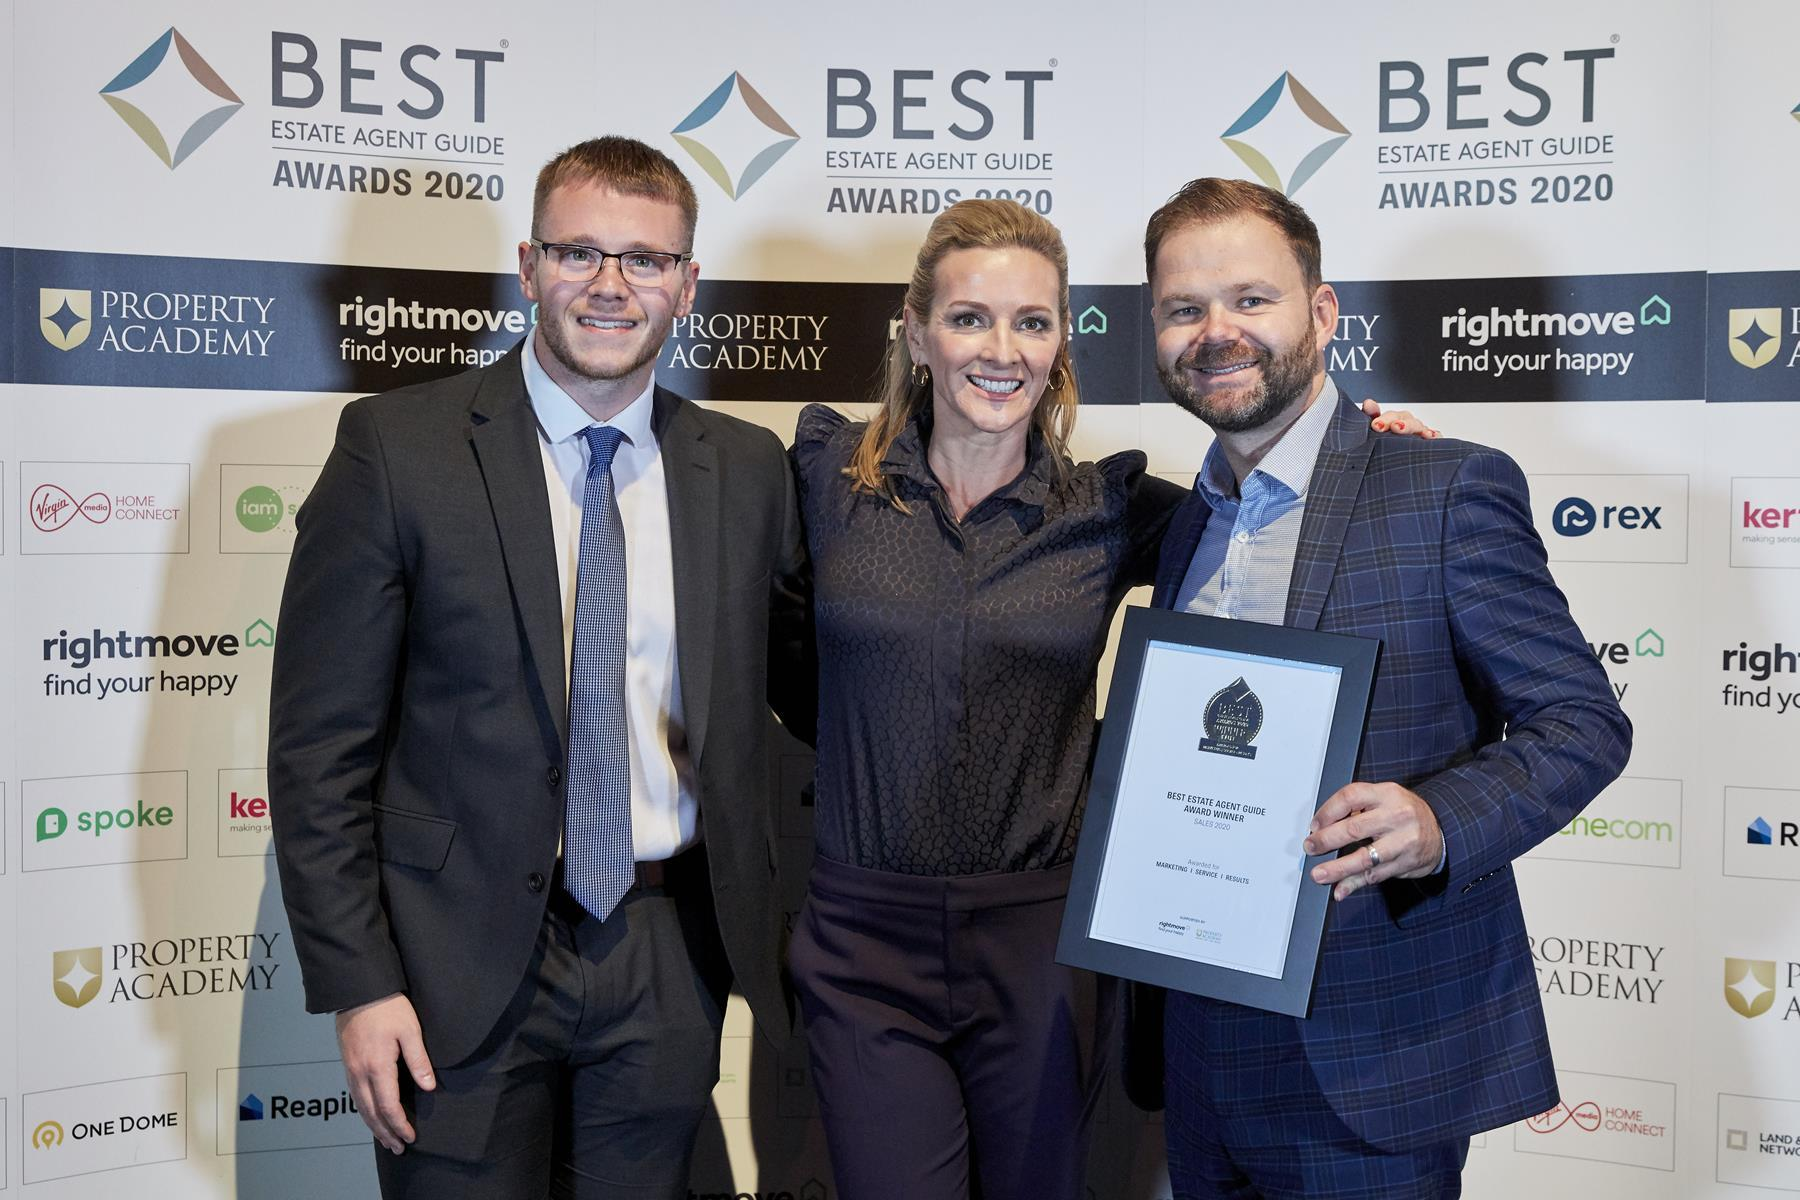 Best Estate Agent Guide Awards 2019